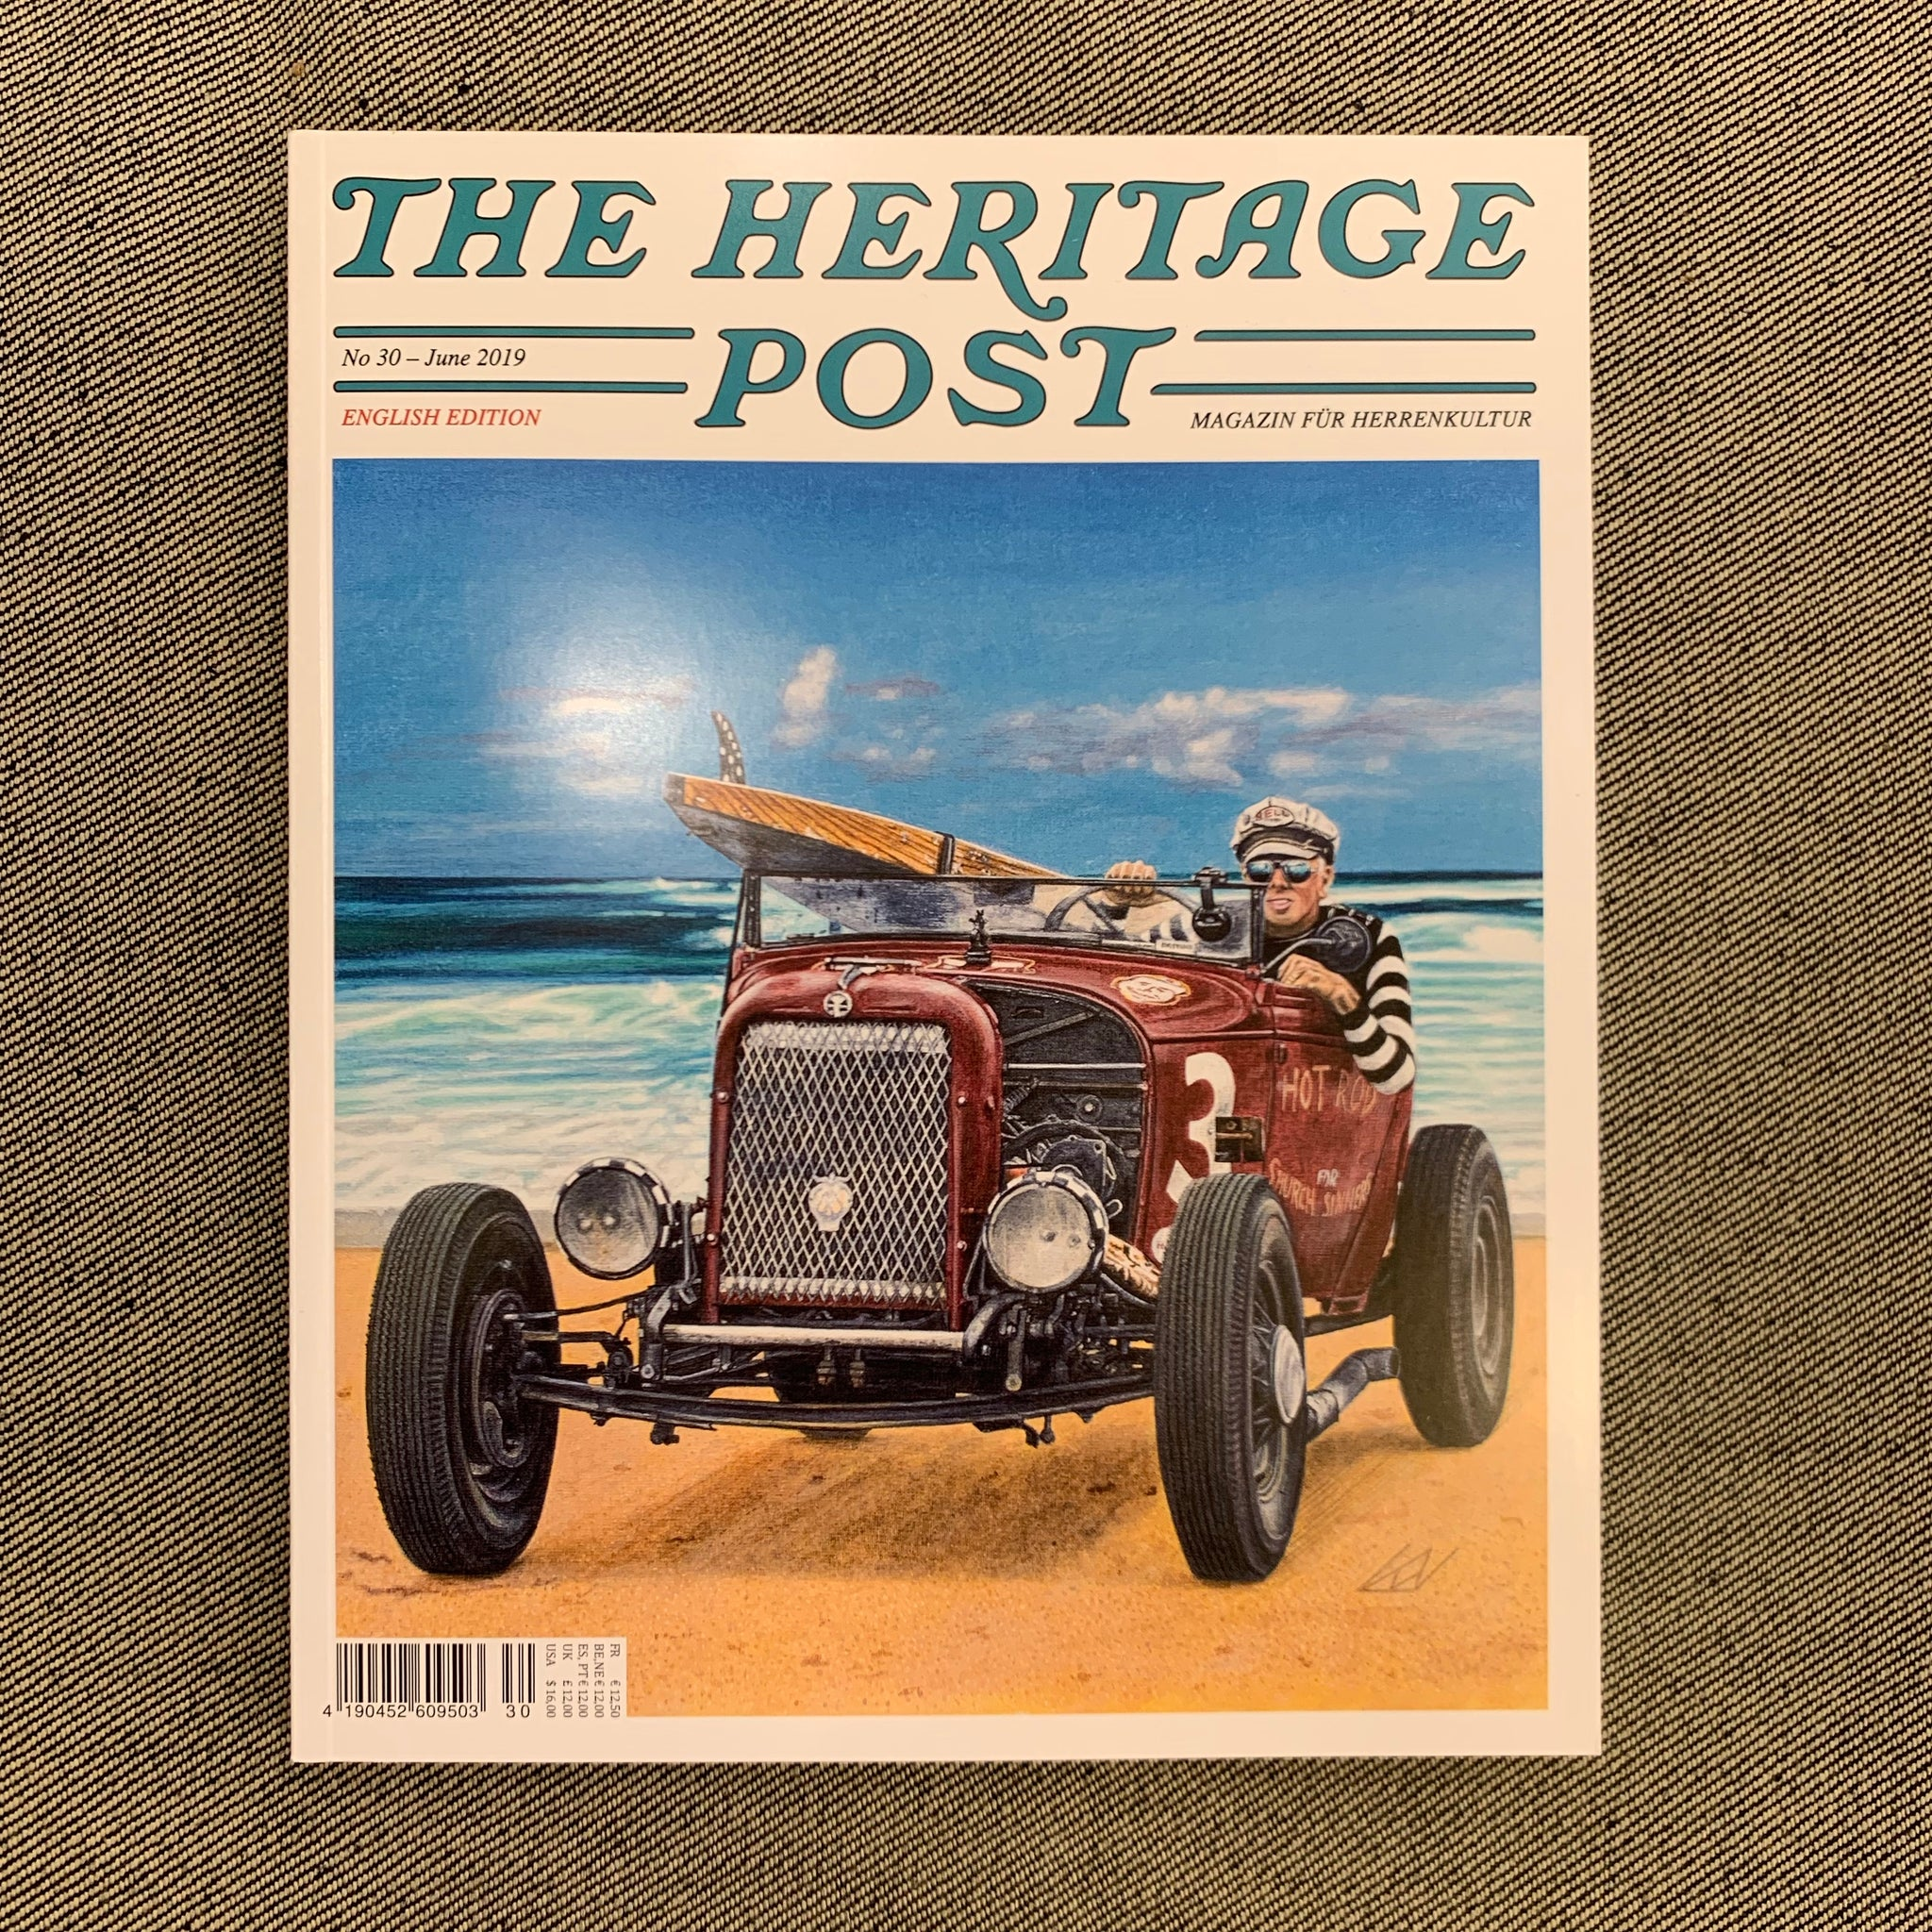 The Heritage Post - vol 30